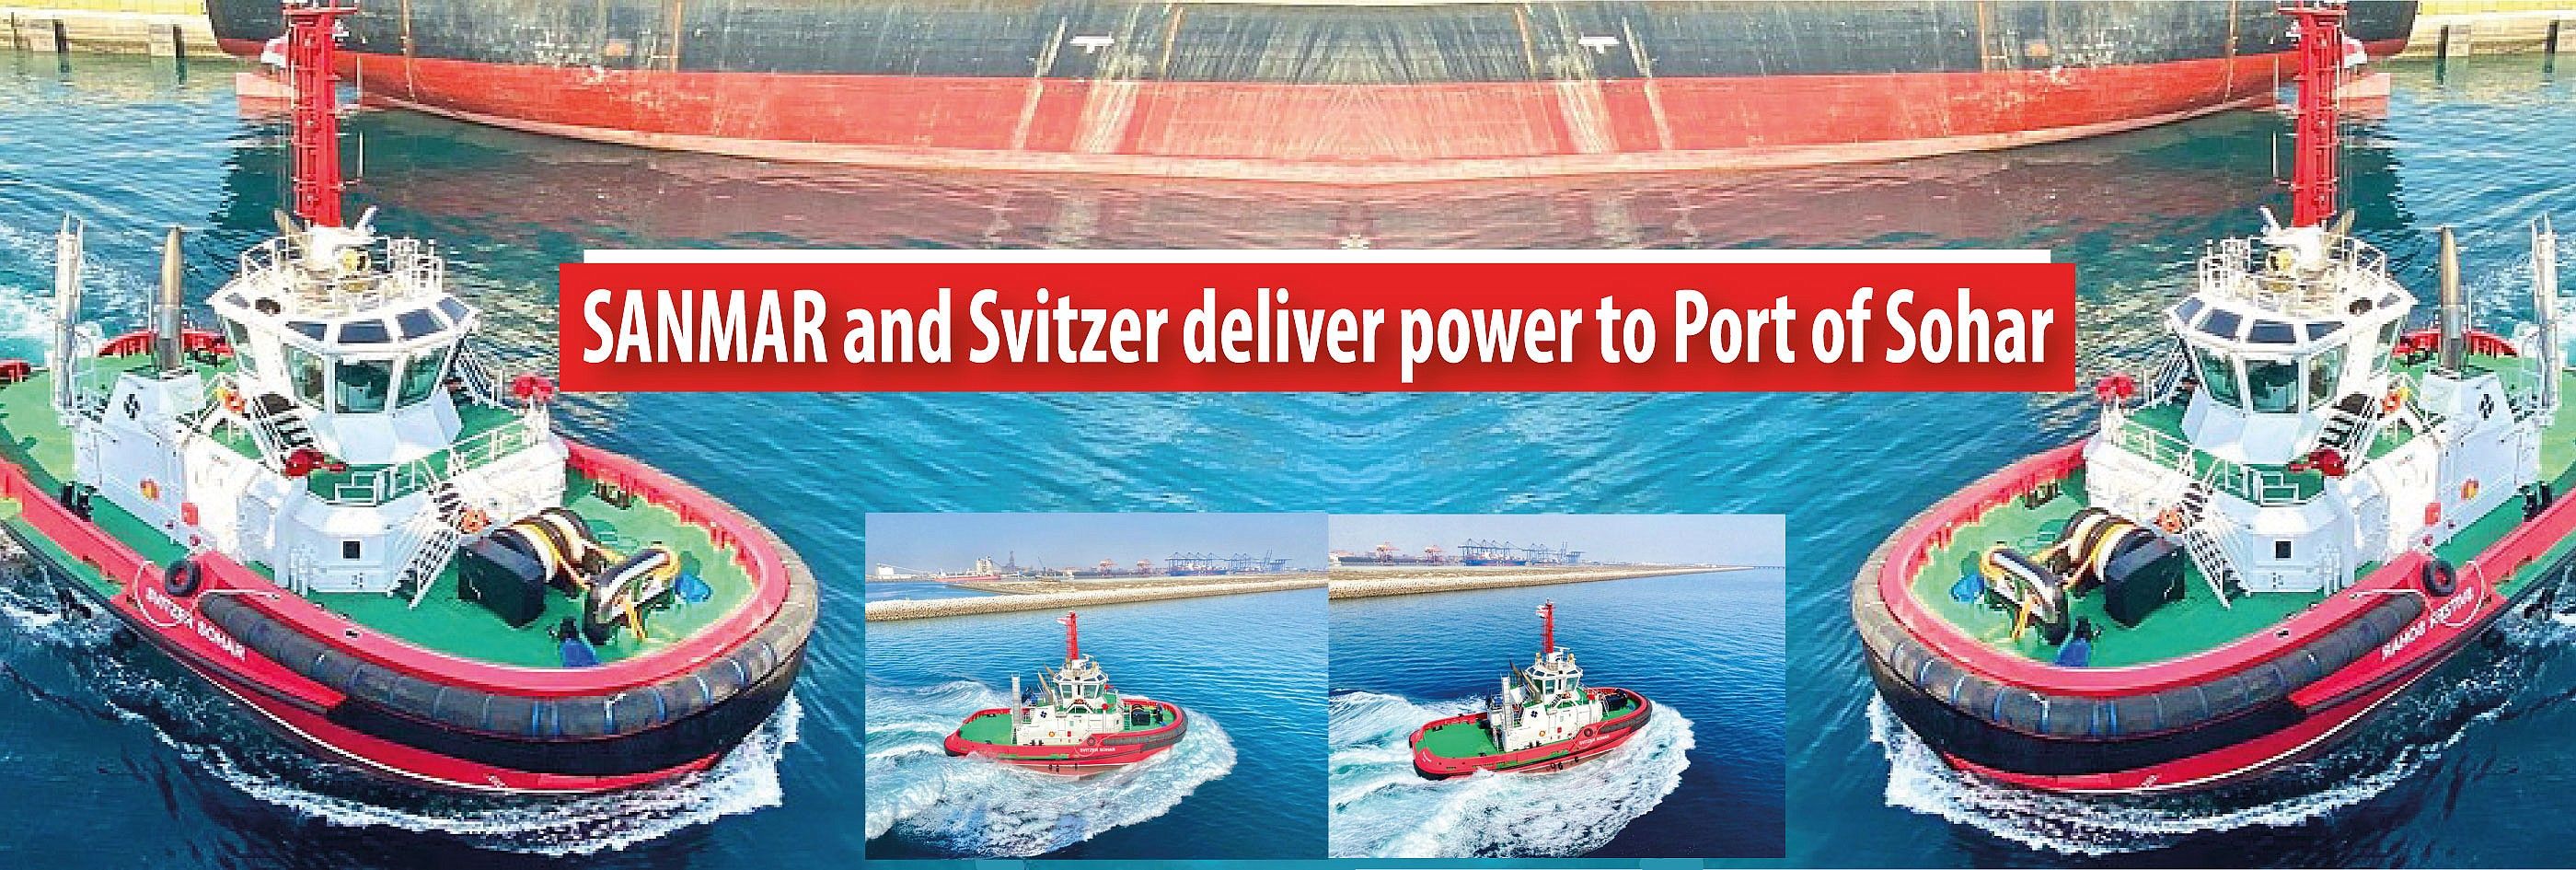 Sanmar and Svitzer deliver power and performance to Port of Sohar